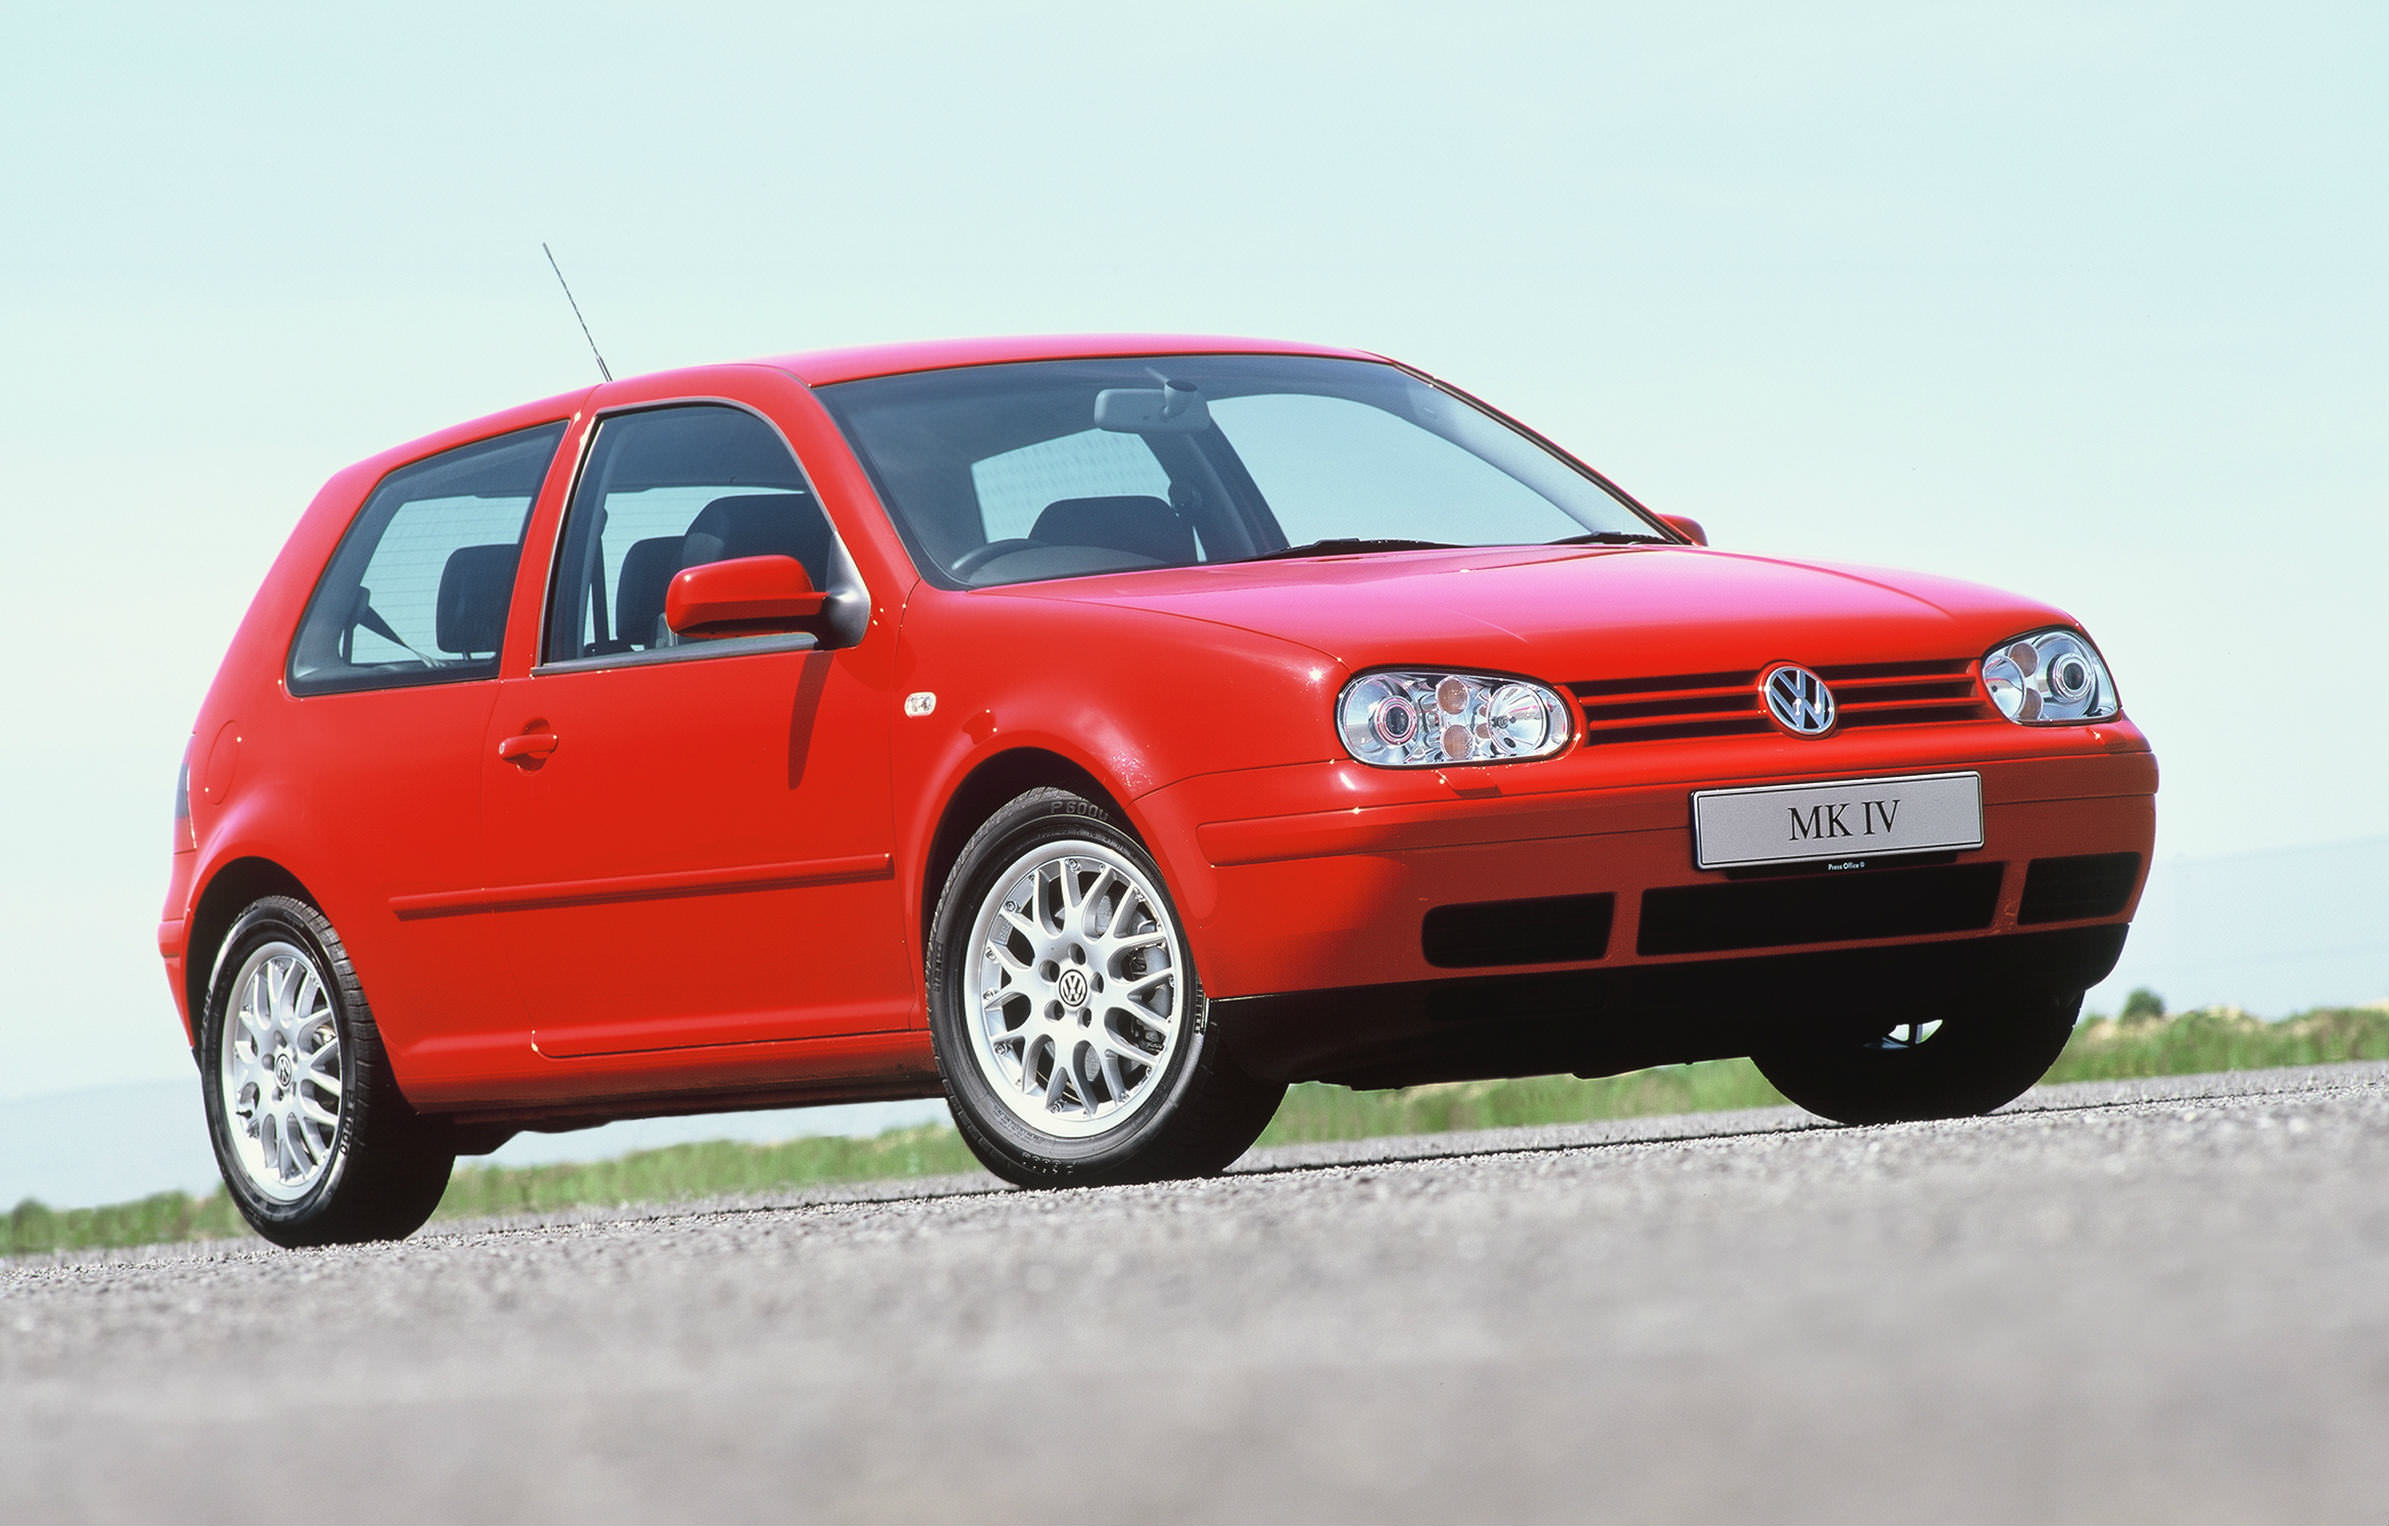 image of a red volkswagen golf gti car exterior